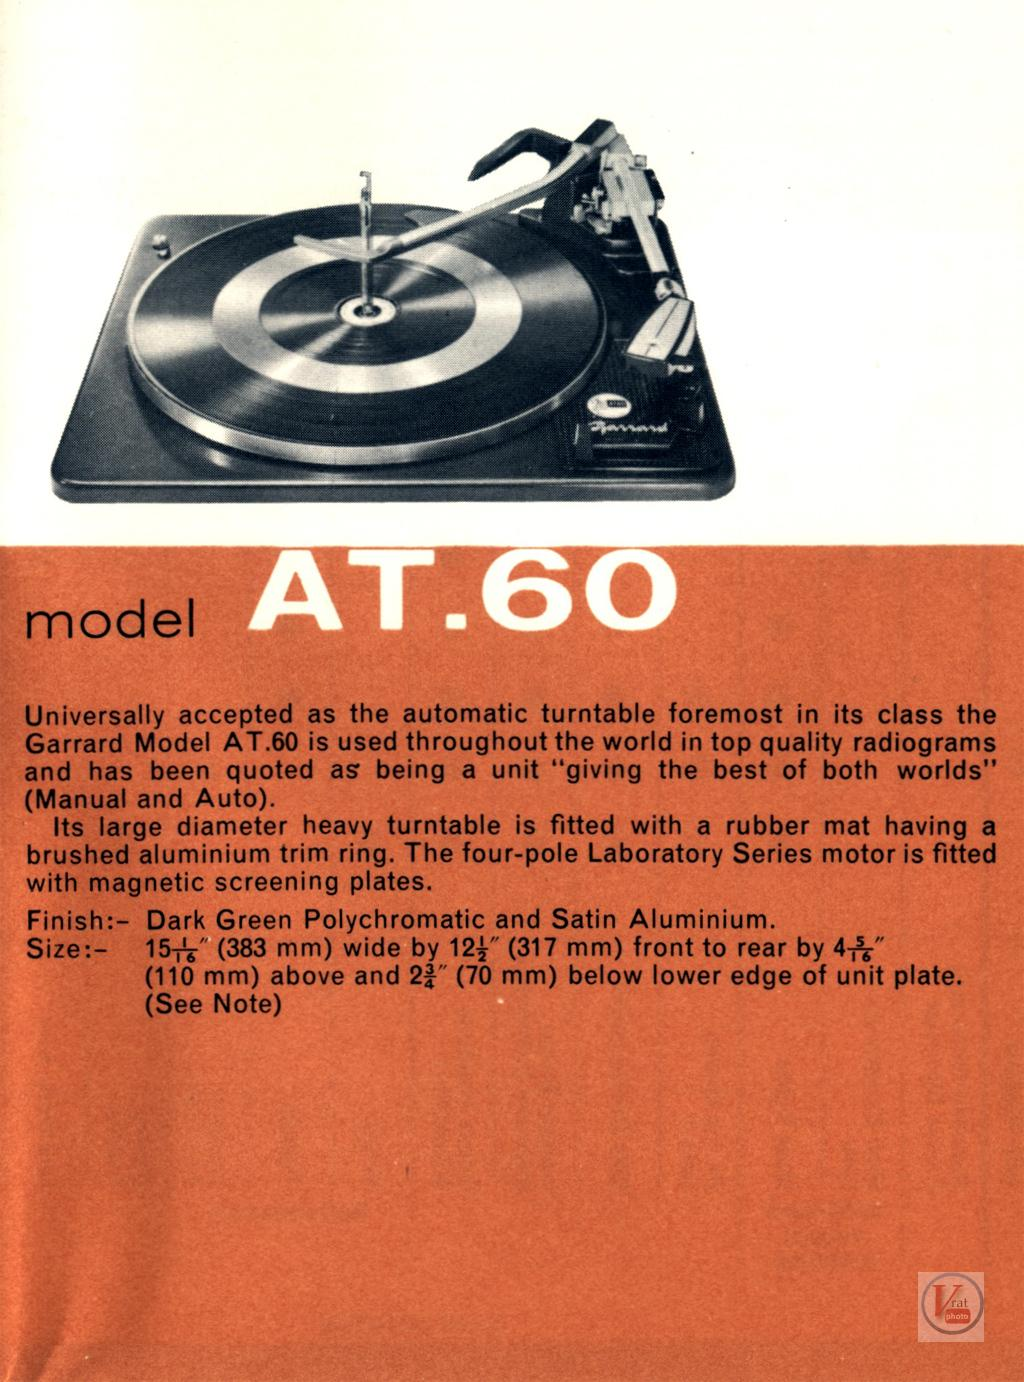 Garrard-401 Turntable 54